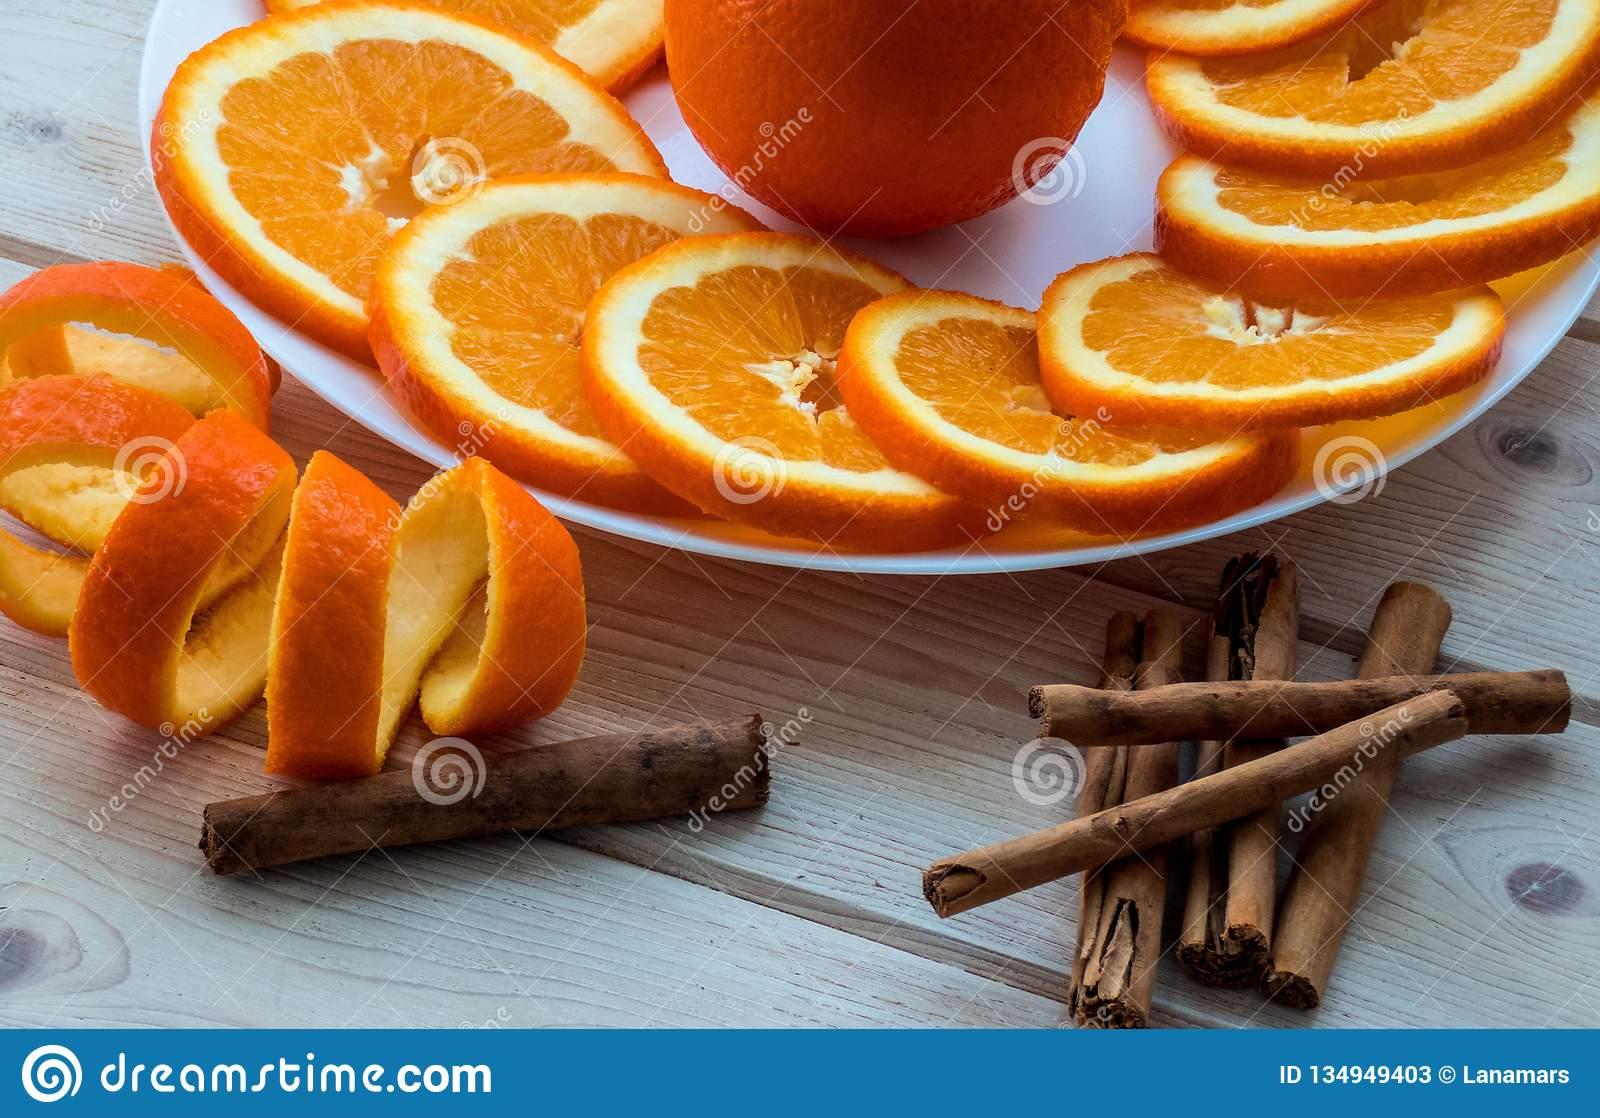 Sliced orange with spiral zest on the plate and cinnamon sticks on the wooden table